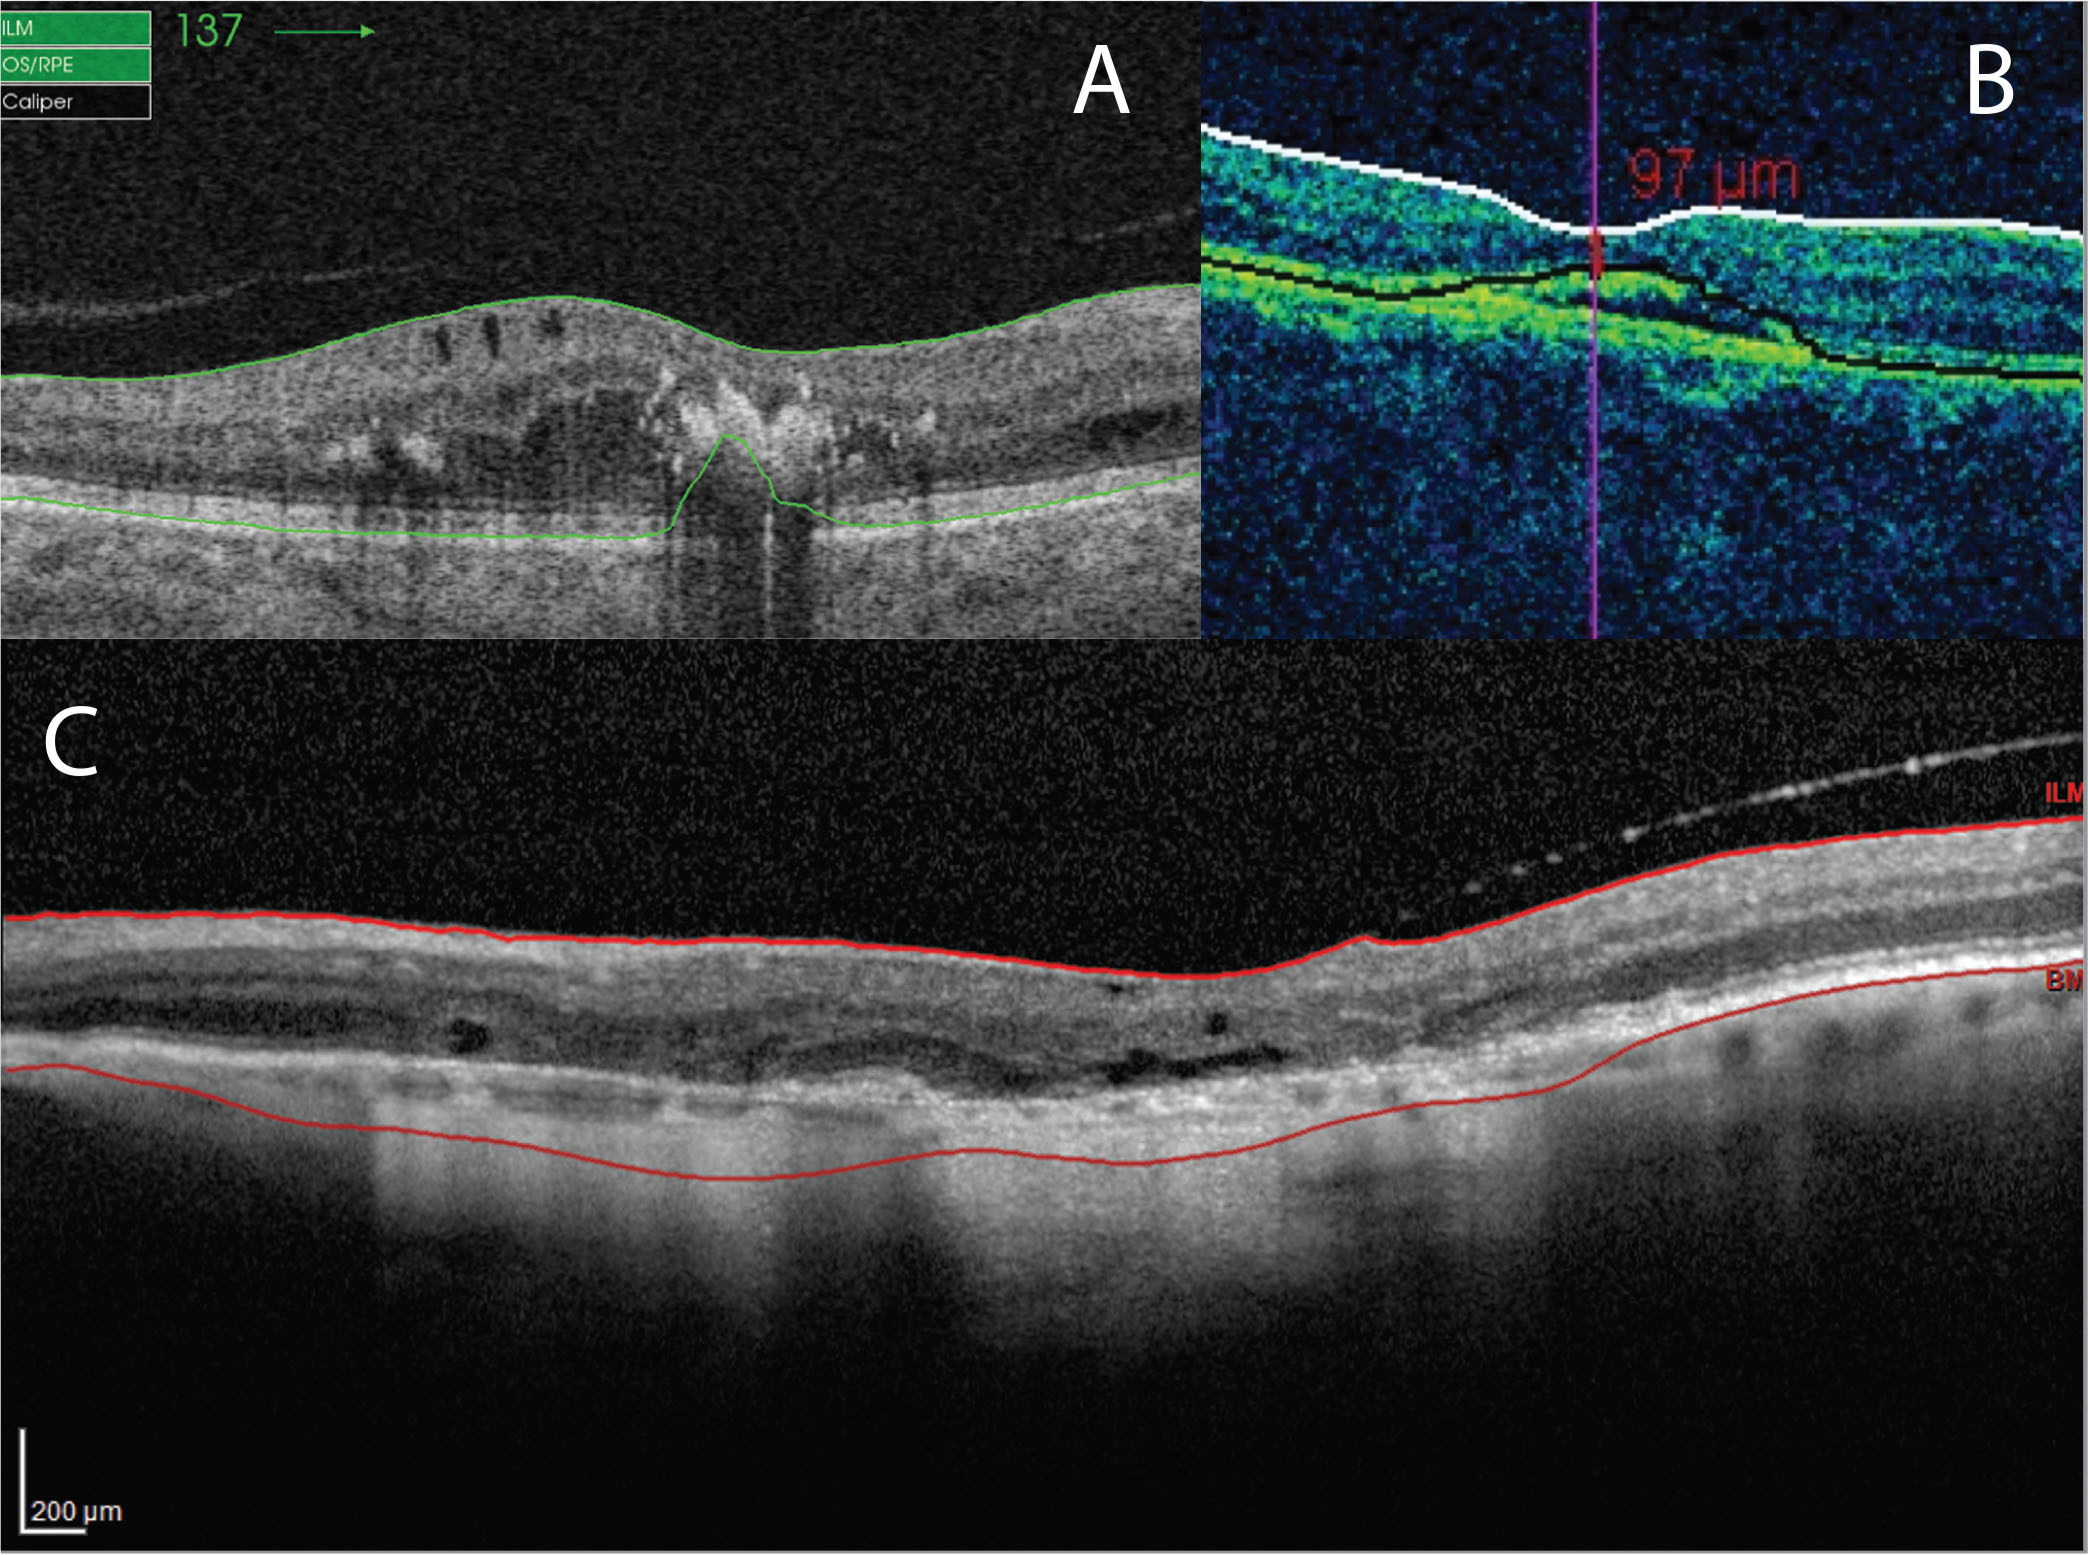 (A) Segmentation error with the Triton device due to retinal hard exudate in an eye with diabetic macular edema. (B) Segmentation error with the Cirrus device due to pigment epithelium detachment in an eye with neovascular age-related macular degeneration (nAMD). (C) Segmentation error with the Spectralis device due to geographic atrophy in an eye with nAMD.